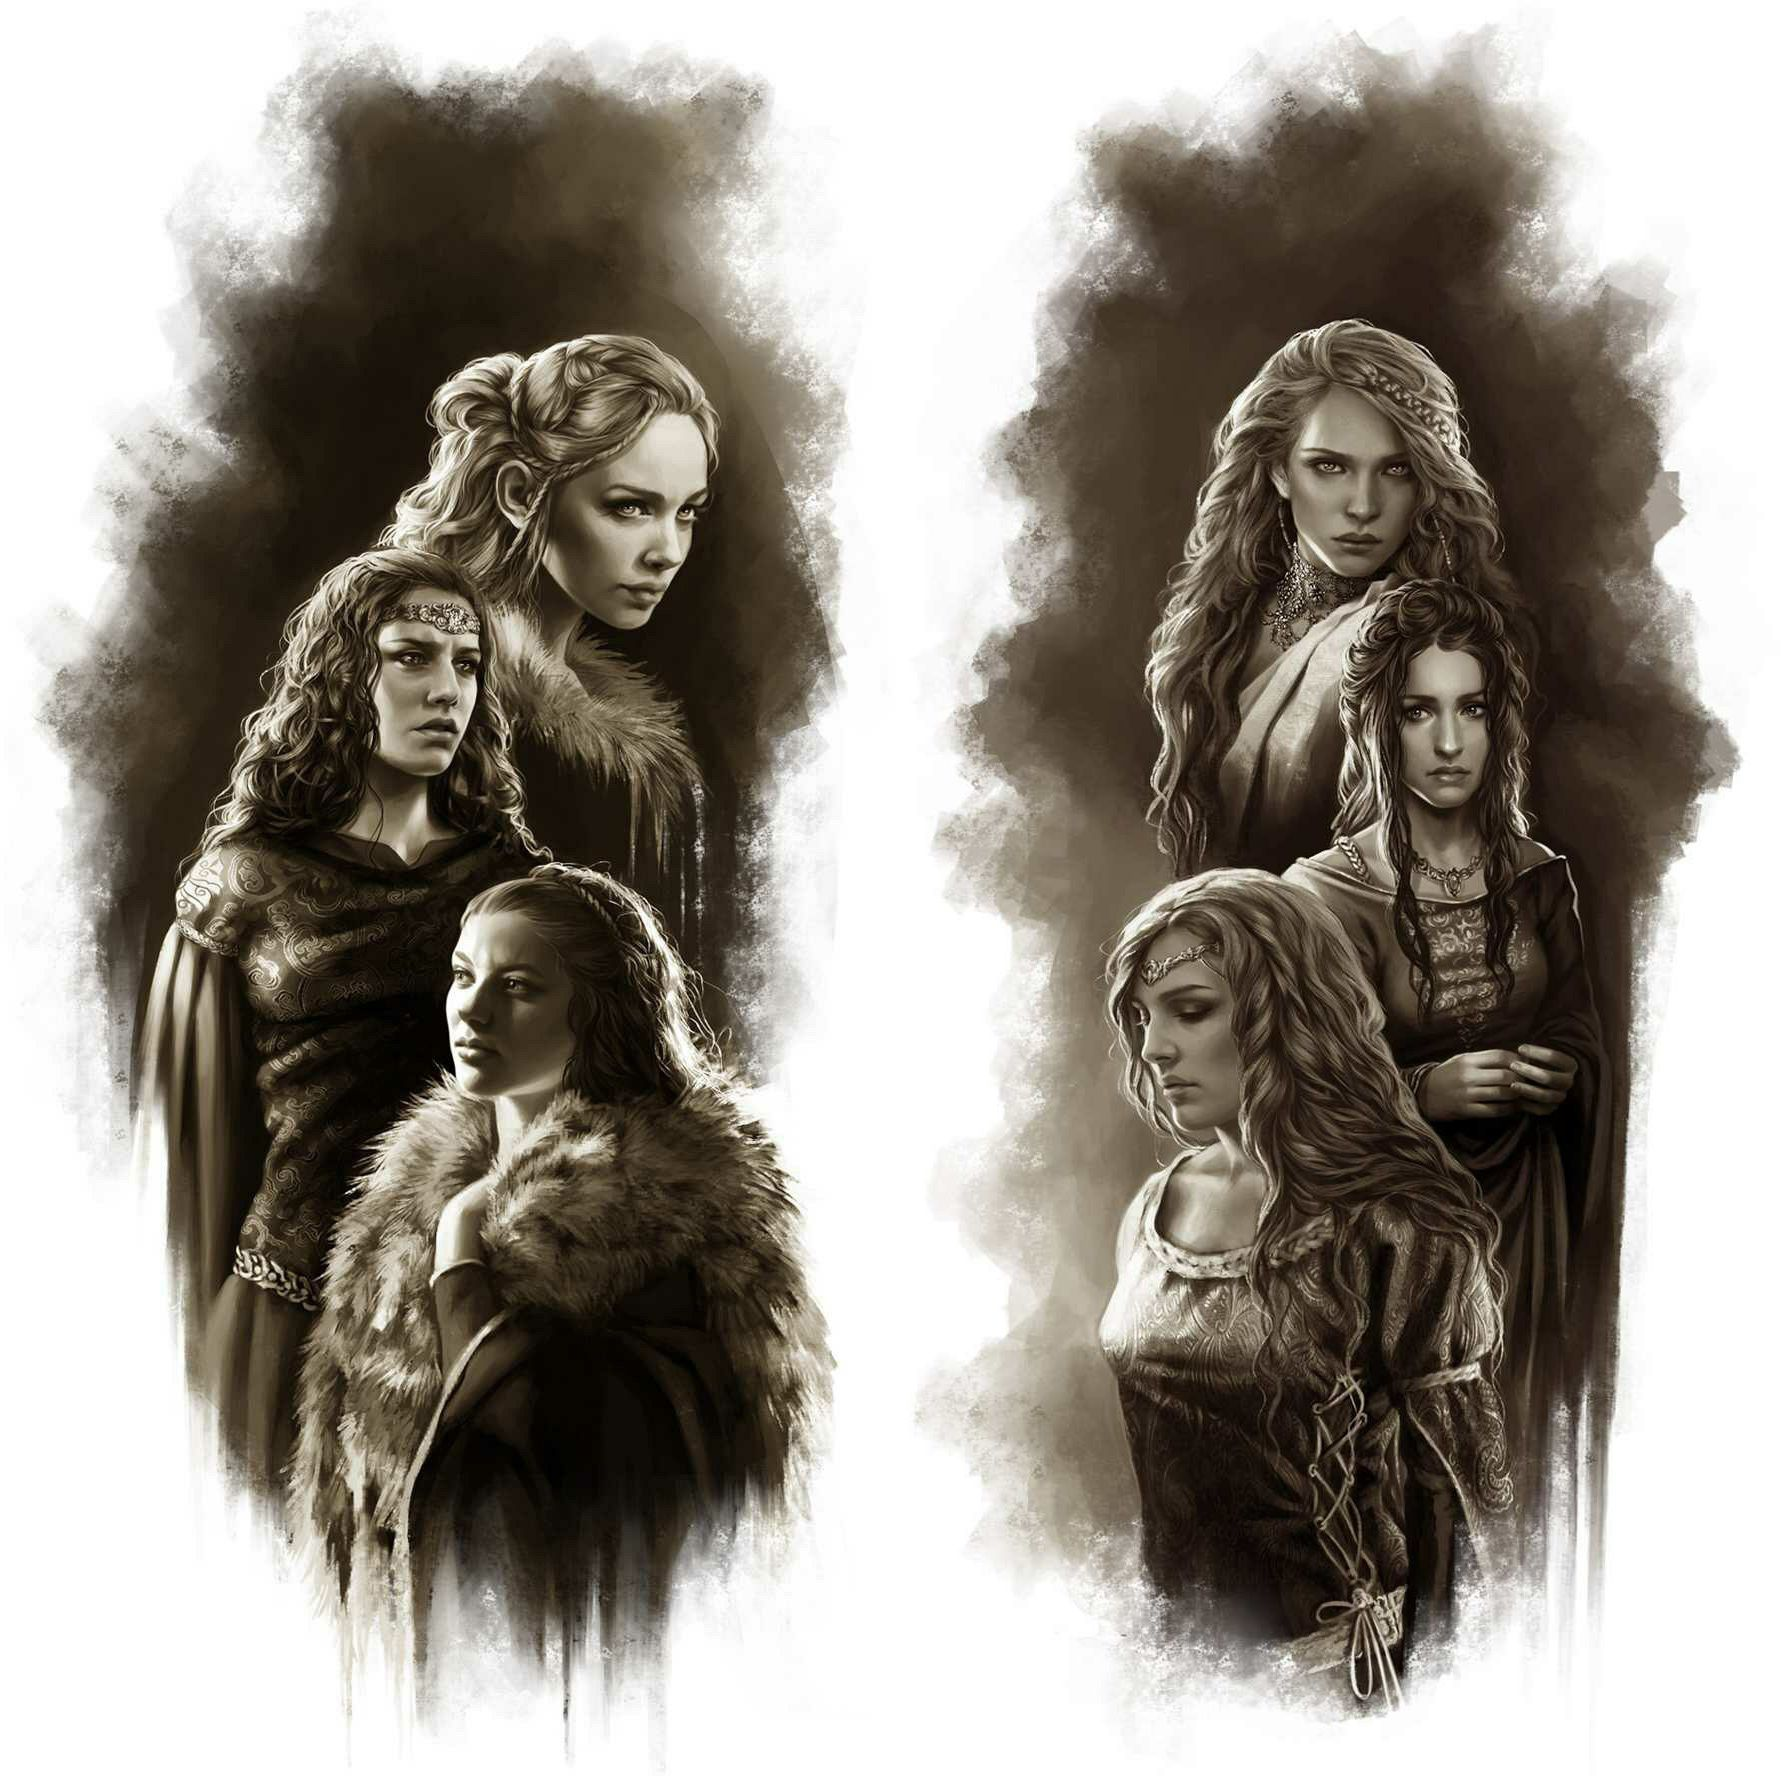 Warriors Fire And Ice Episode 3: The Brides Of Maegor The Cruel